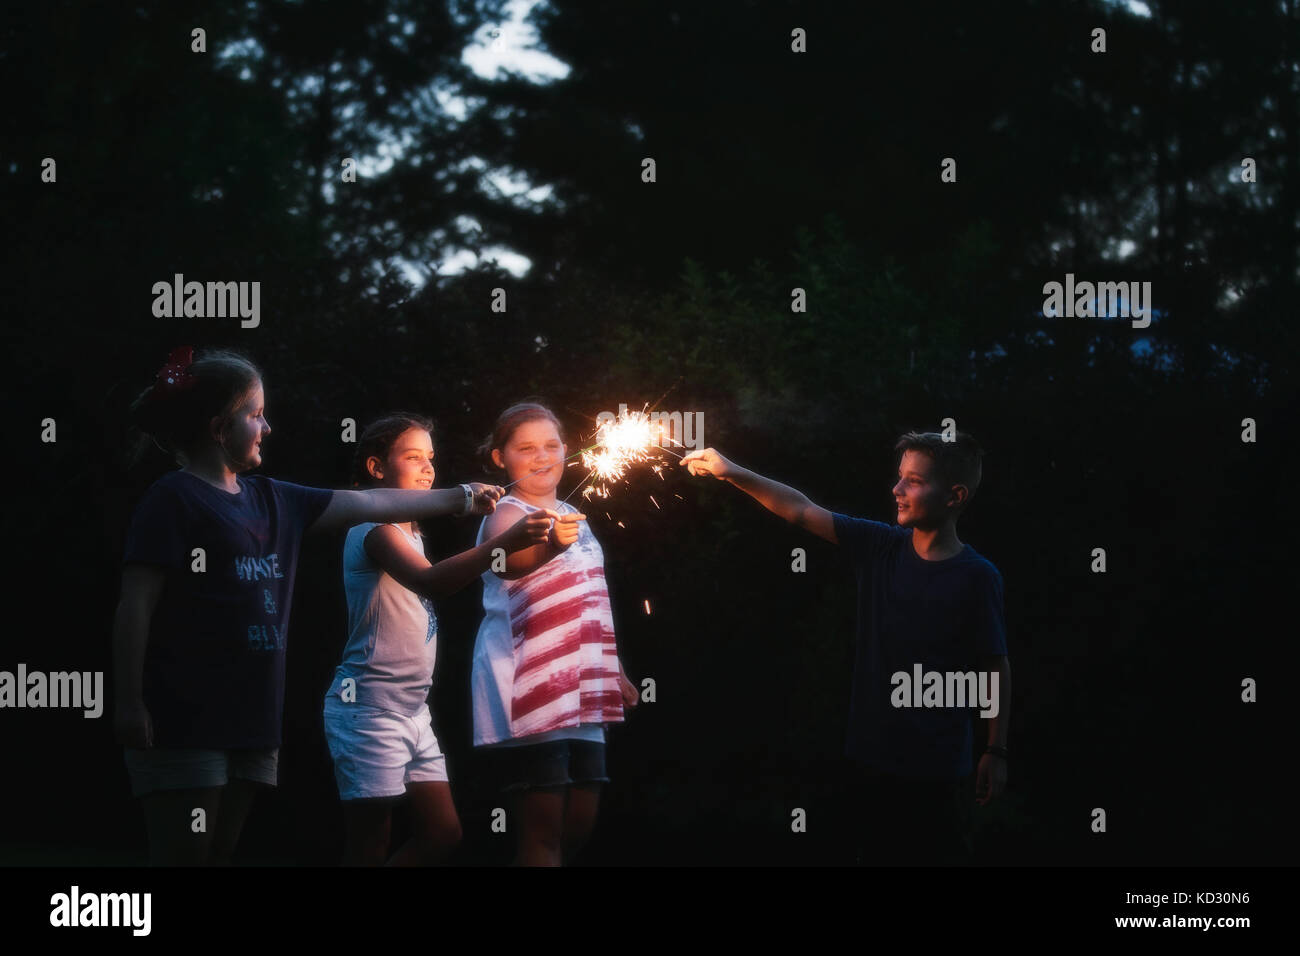 Boy and three girls igniting sparklers together at night on independence day, USA - Stock Image